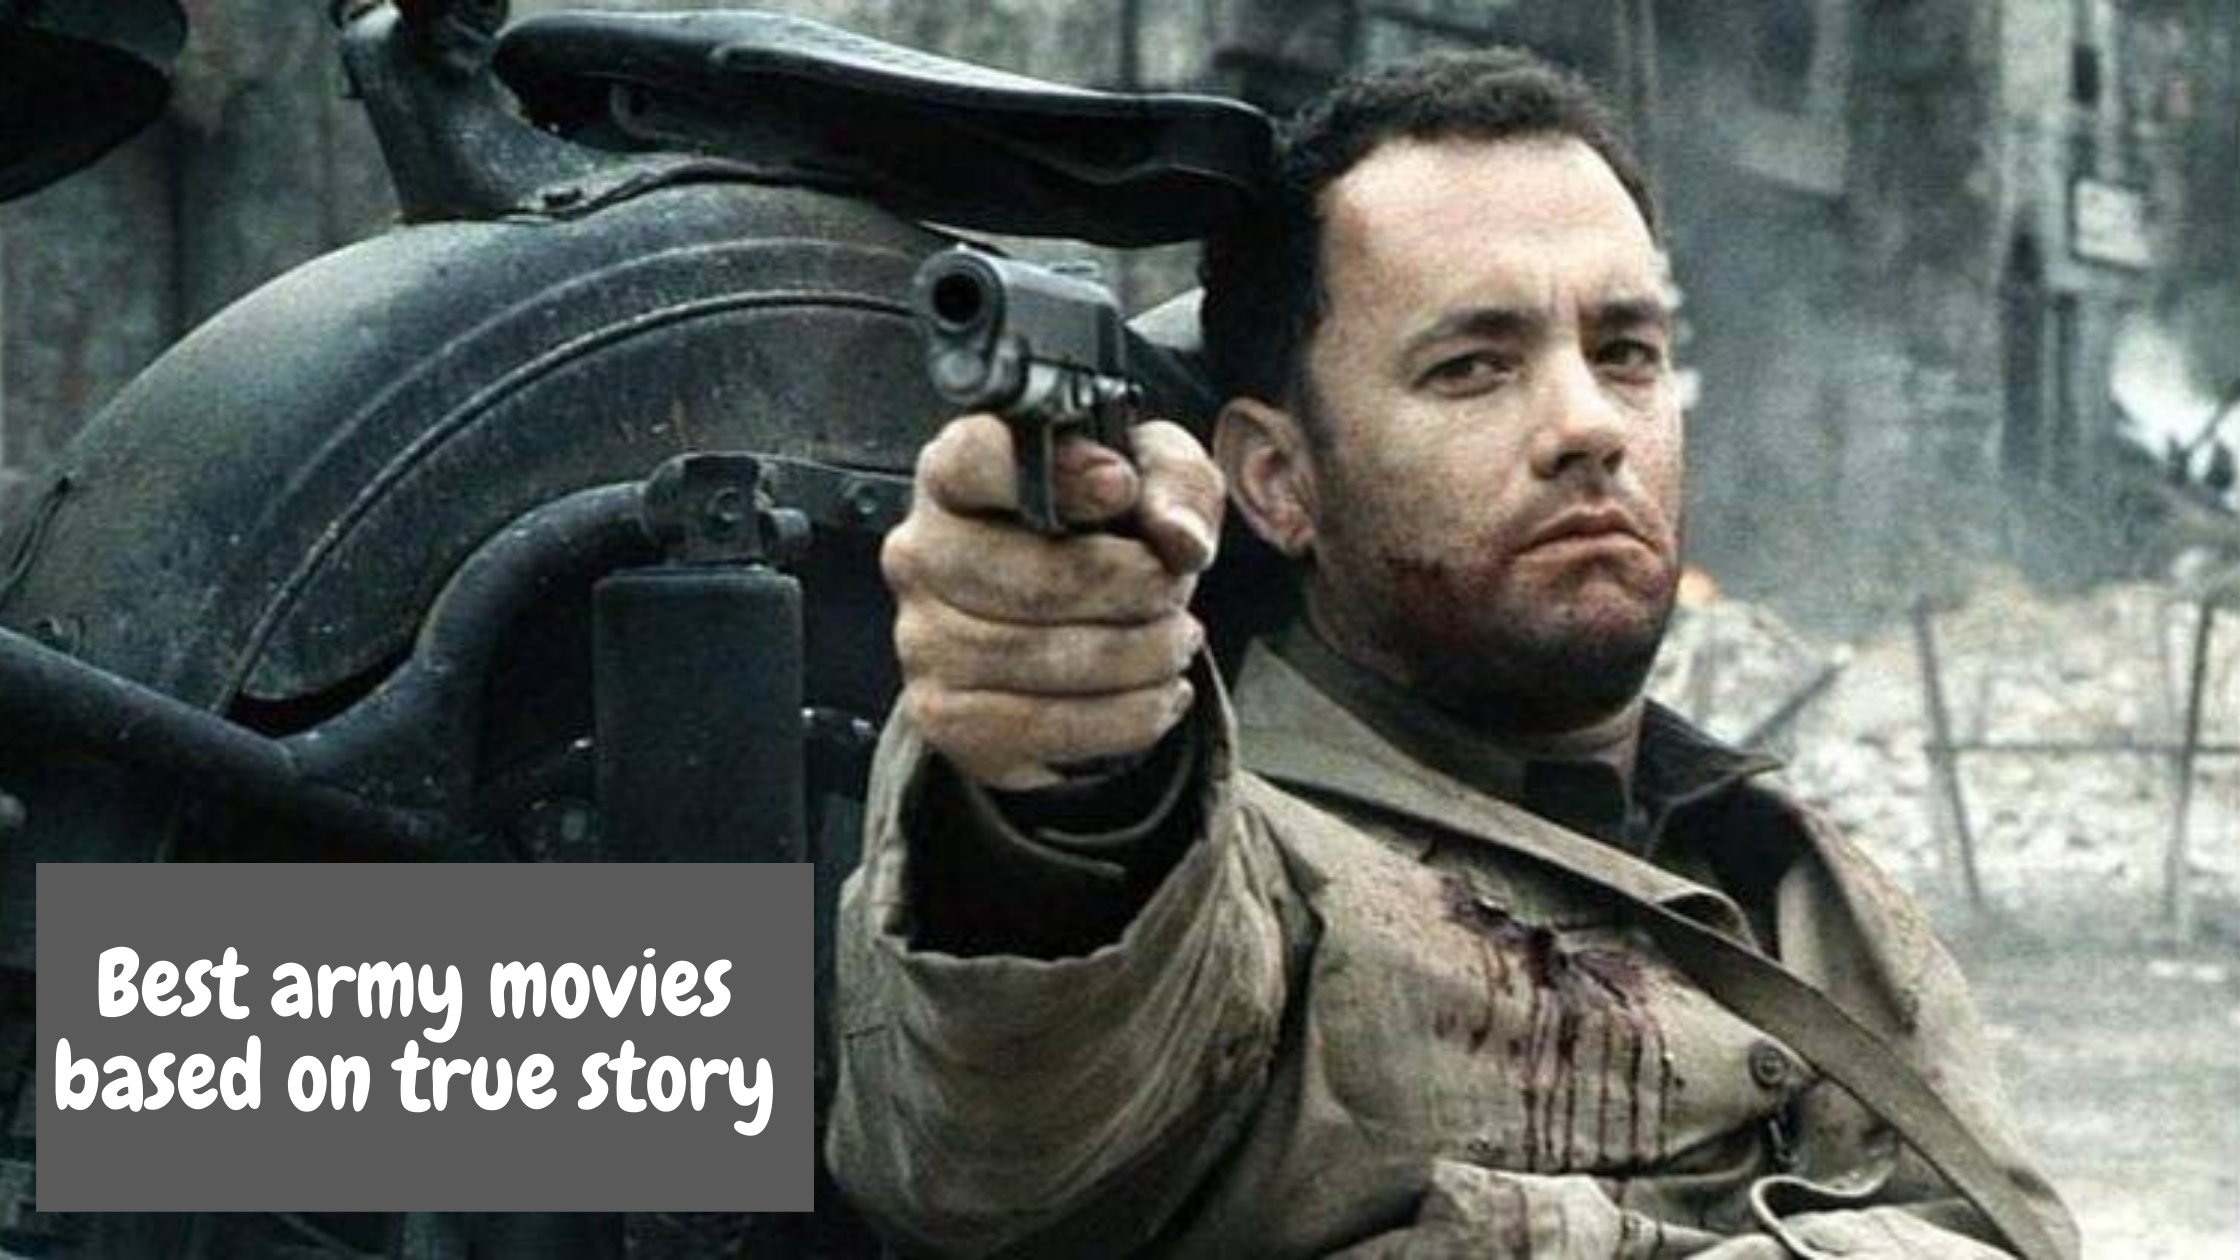 Best army movies based on true story